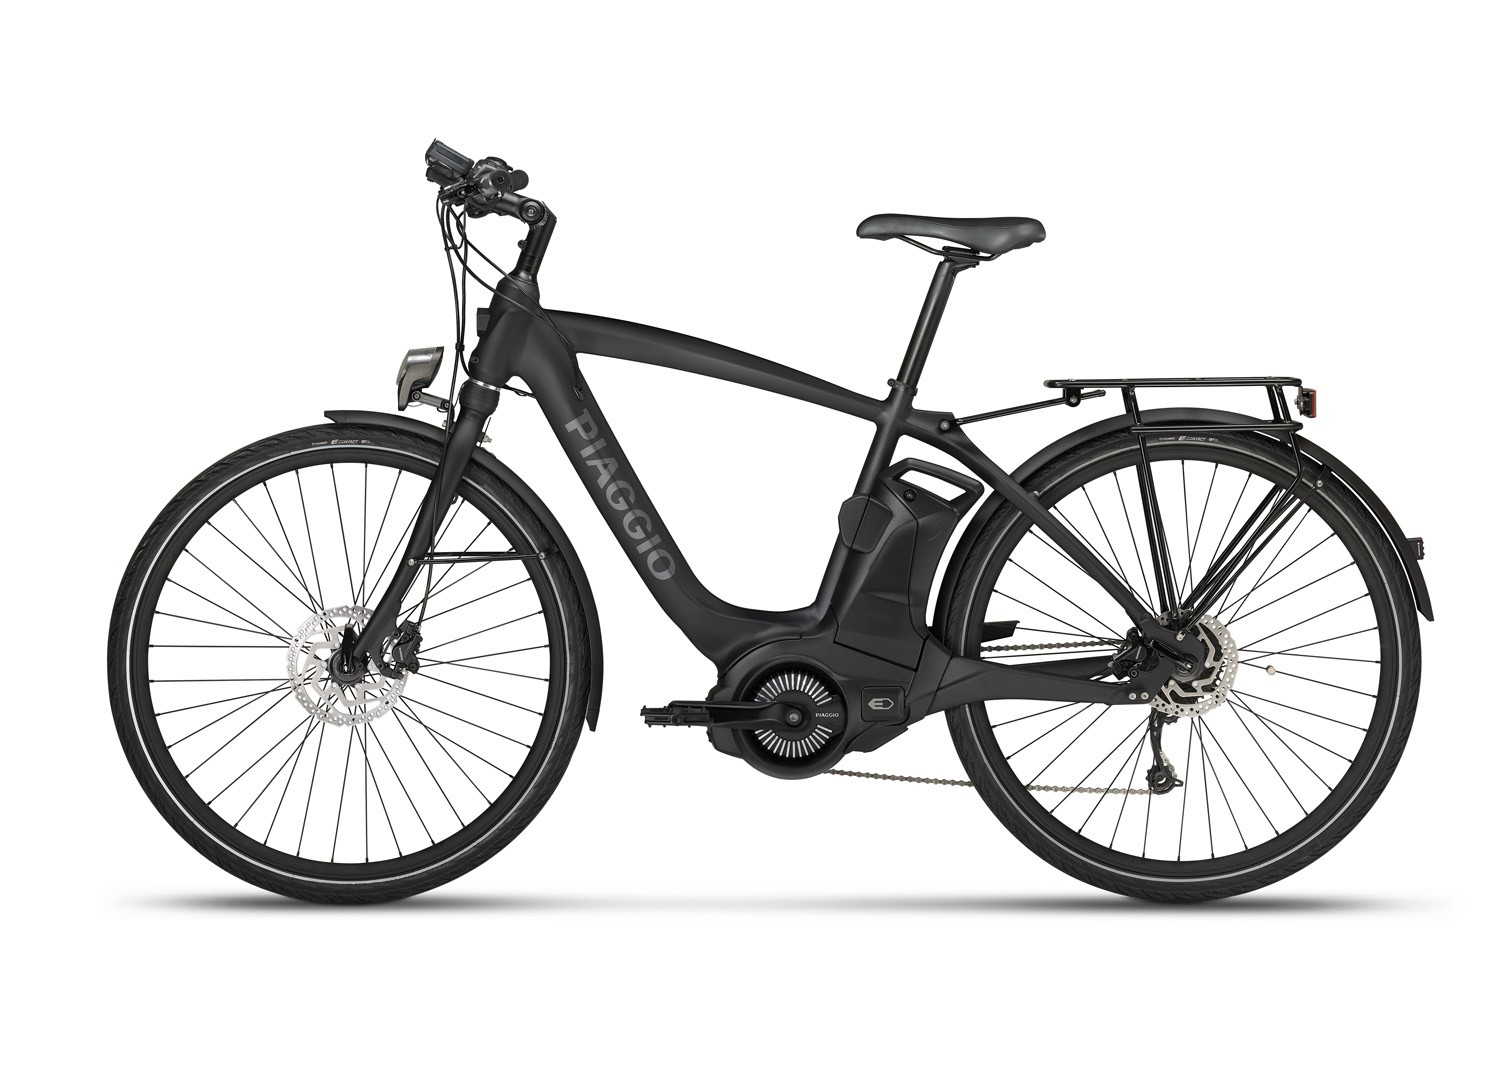 Piaggio Wi-bike Looks as Sharp as It Gets and We Love It ...